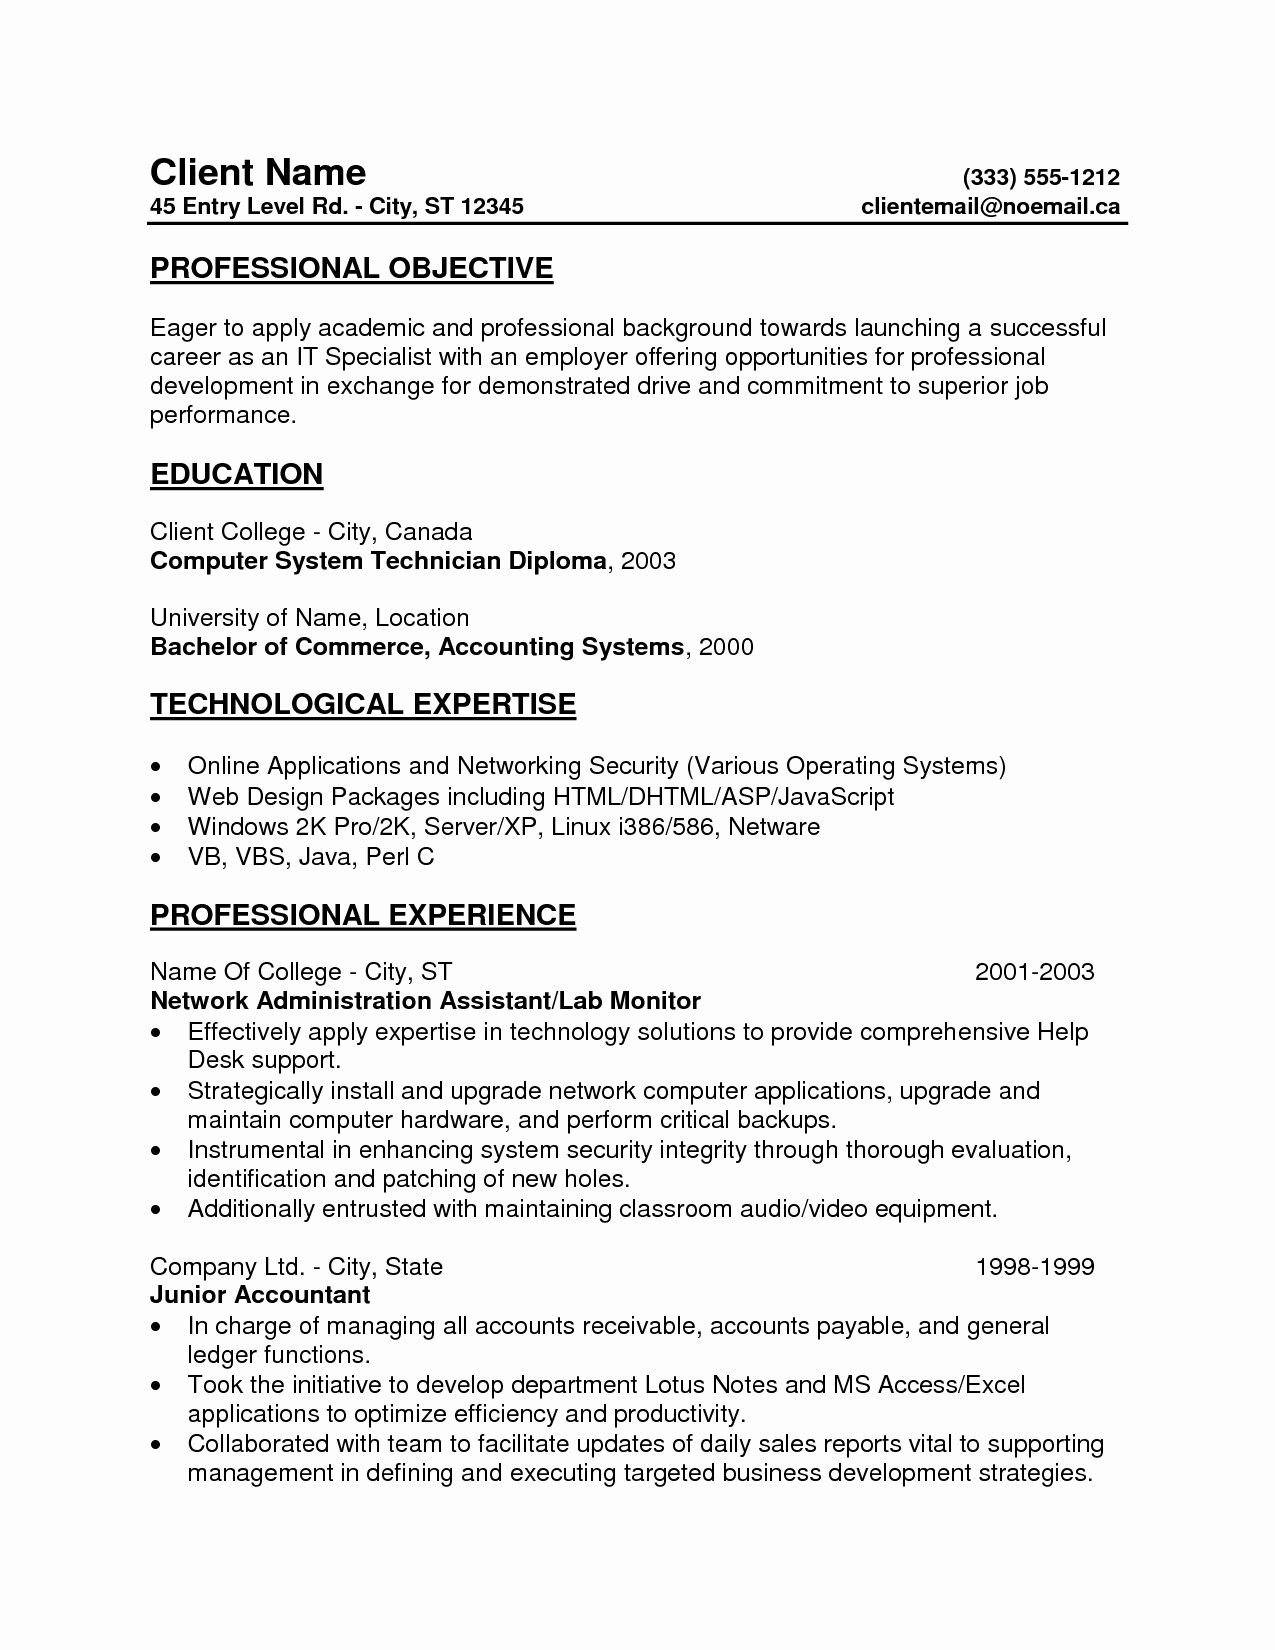 data entry resume objective luxury level professional and examples statement polished Resume Resume Objective Statement Entry Level Examples